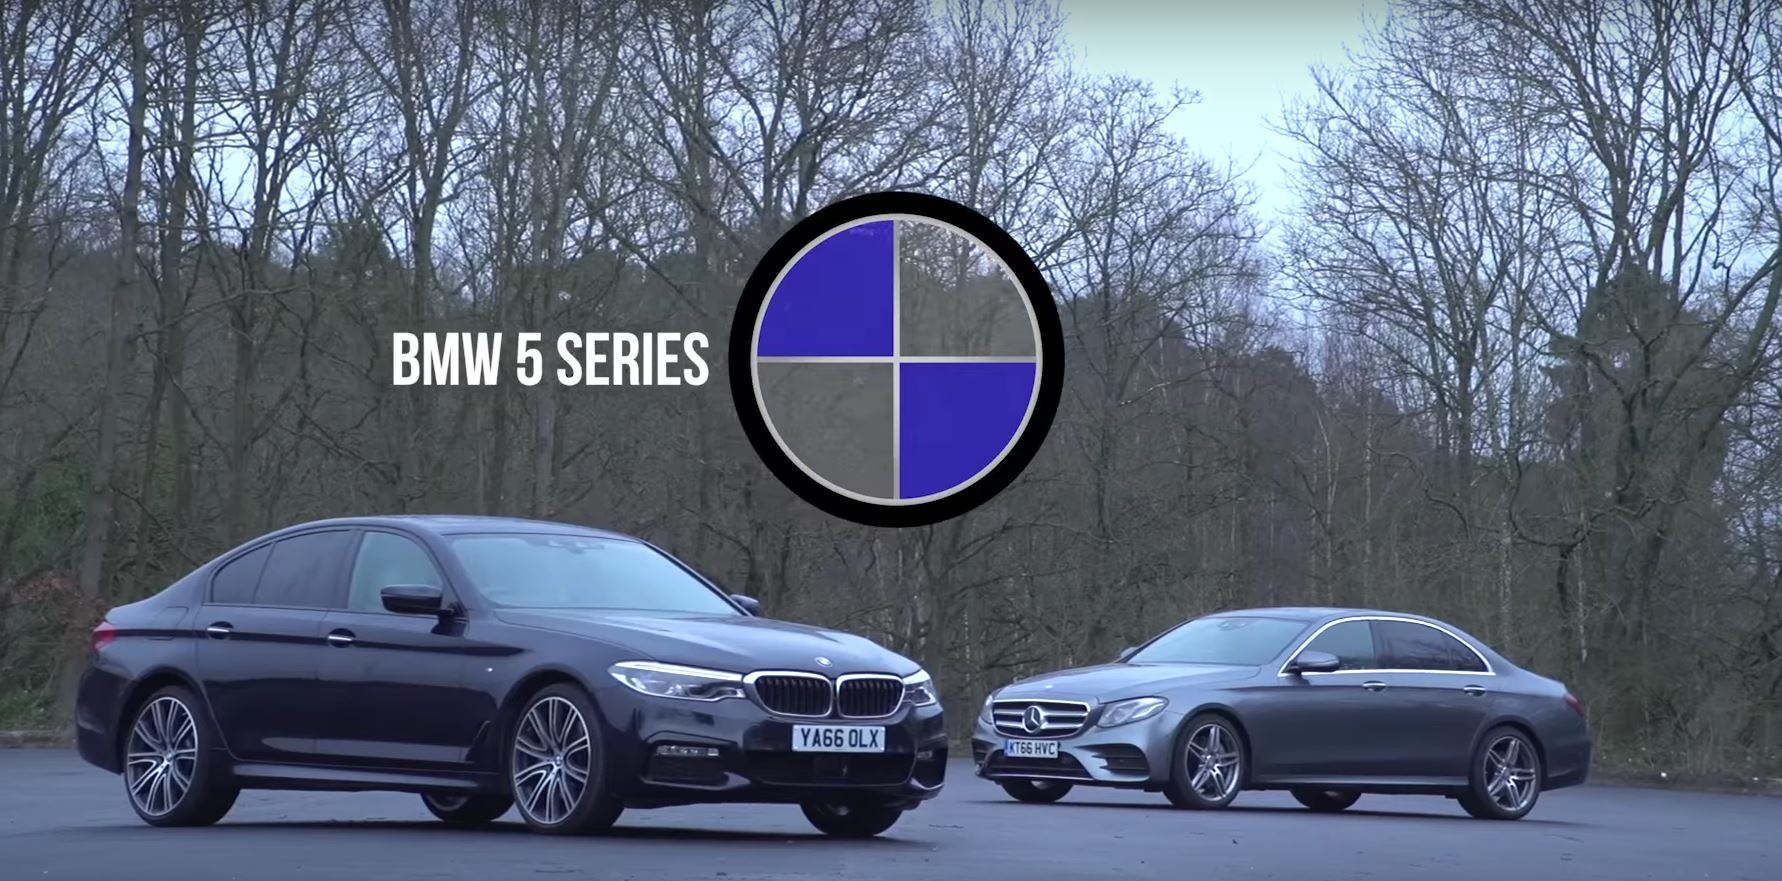 2017 bmw 5 series vs mercedes benz e class comparison for Mercedes benz s series